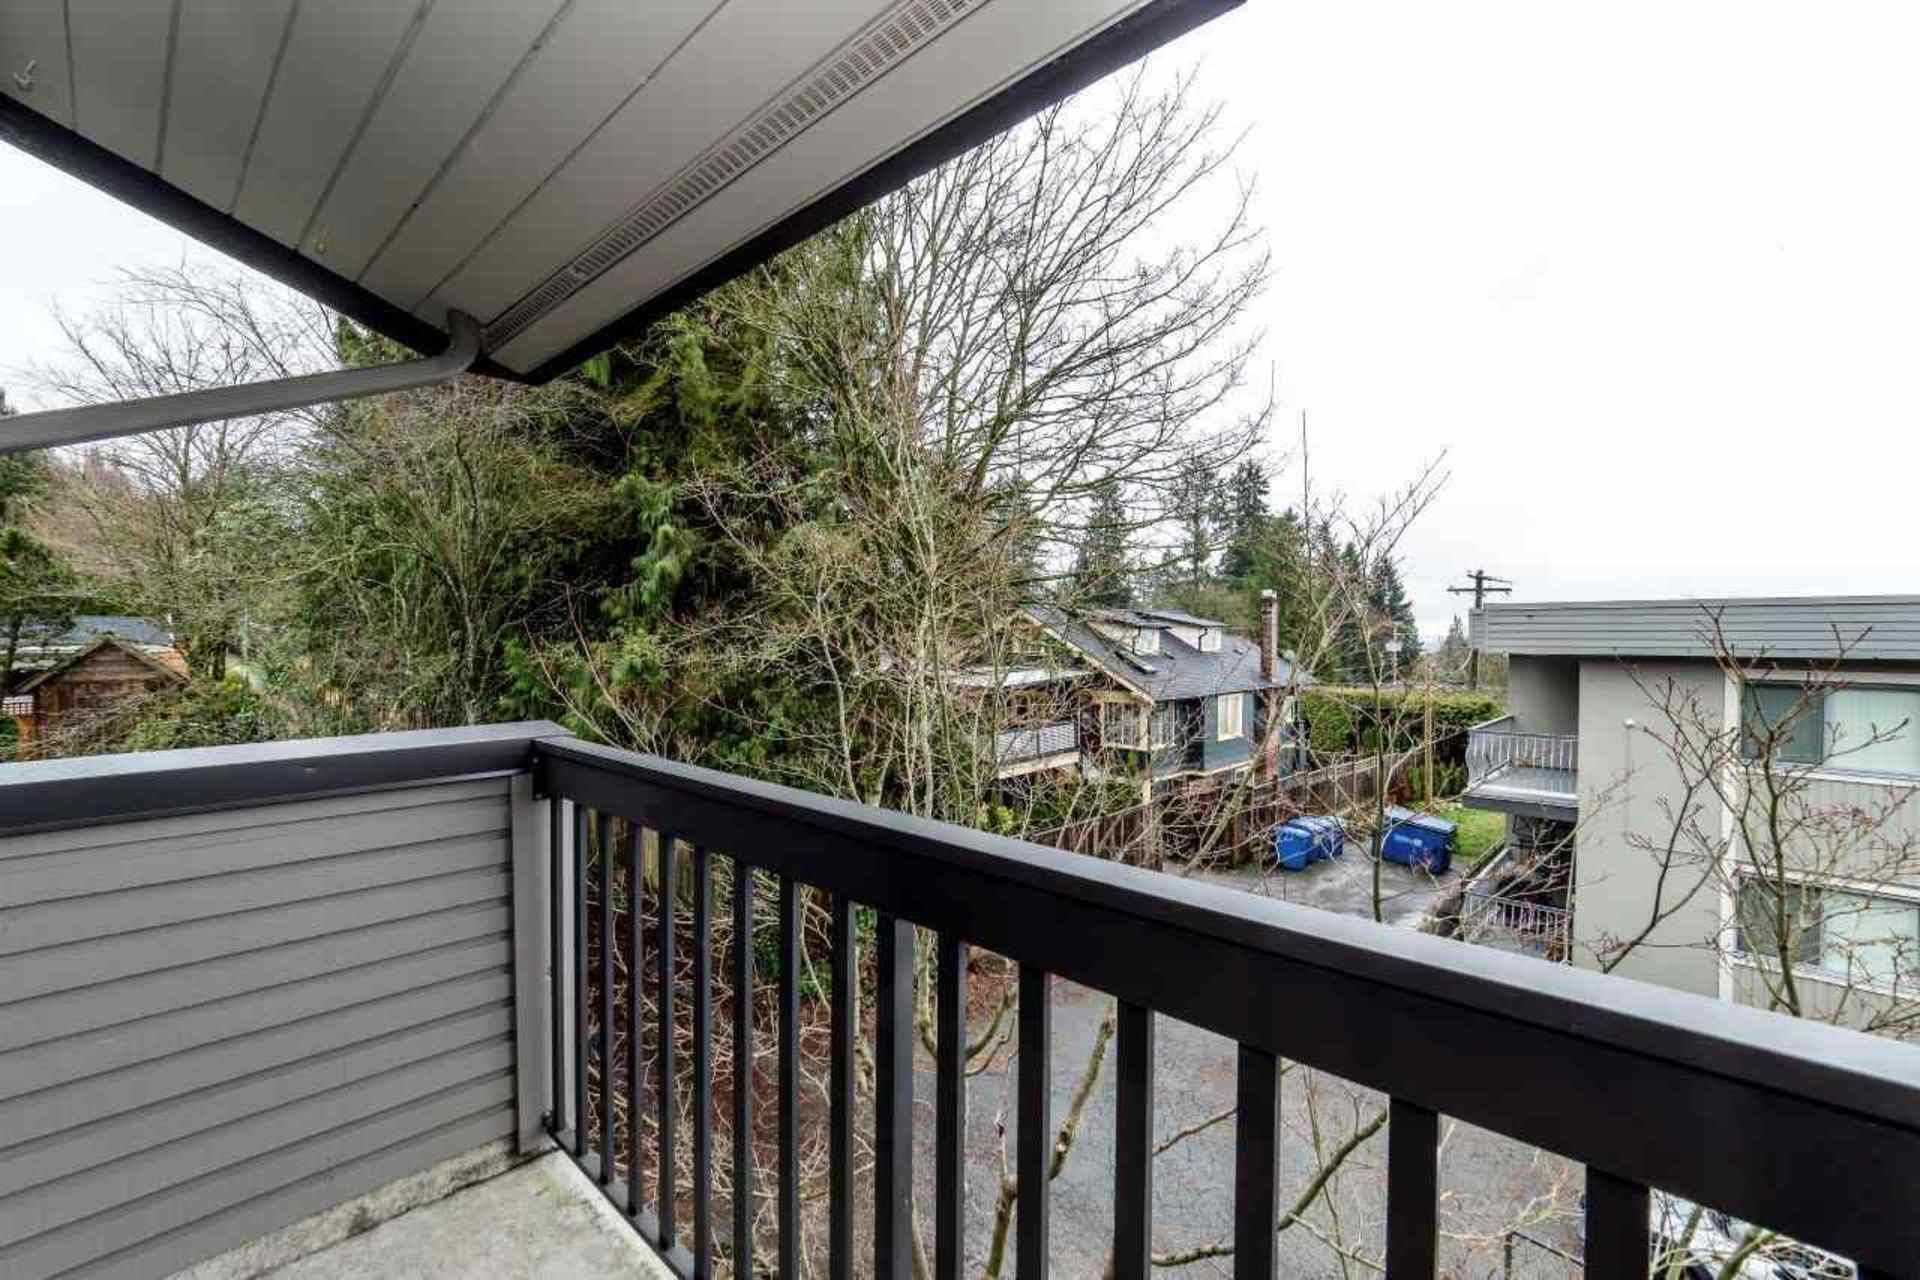 3130-lonsdale-avenue-upper-lonsdale-north-vancouver-19 at 3130 Lonsdale Avenue, Upper Lonsdale, North Vancouver